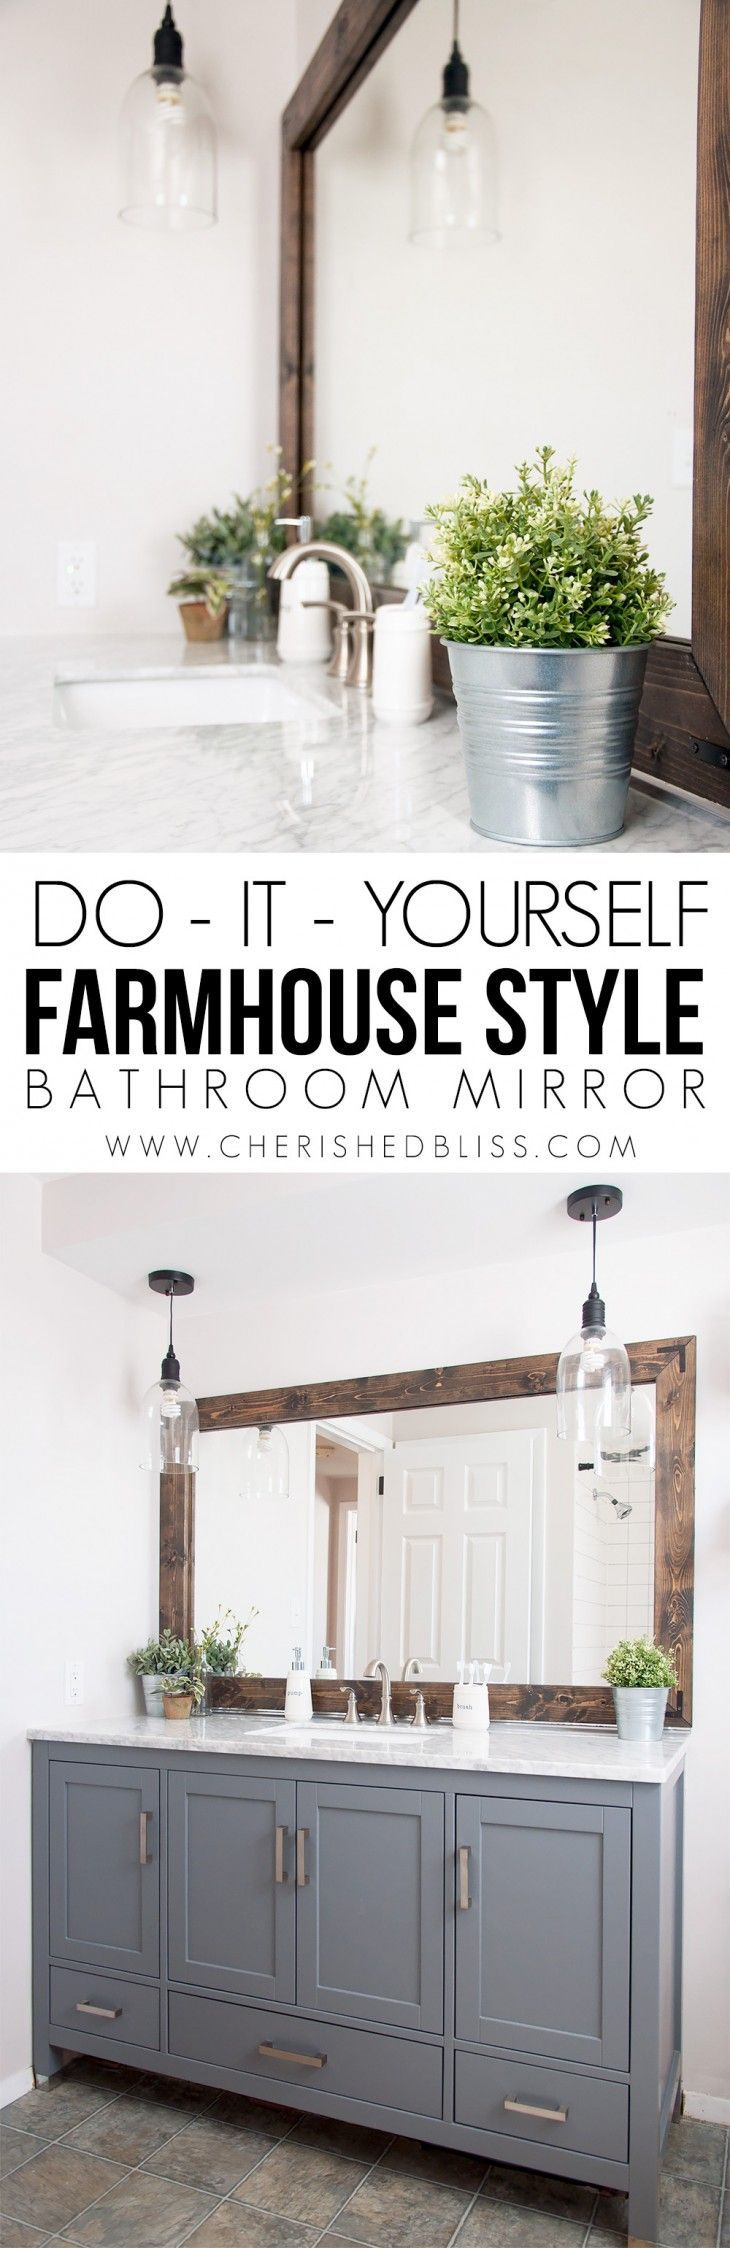 15 Cozy Farmhouse DIY Decor Ideas 6Farmhouse Bathroom Mirror